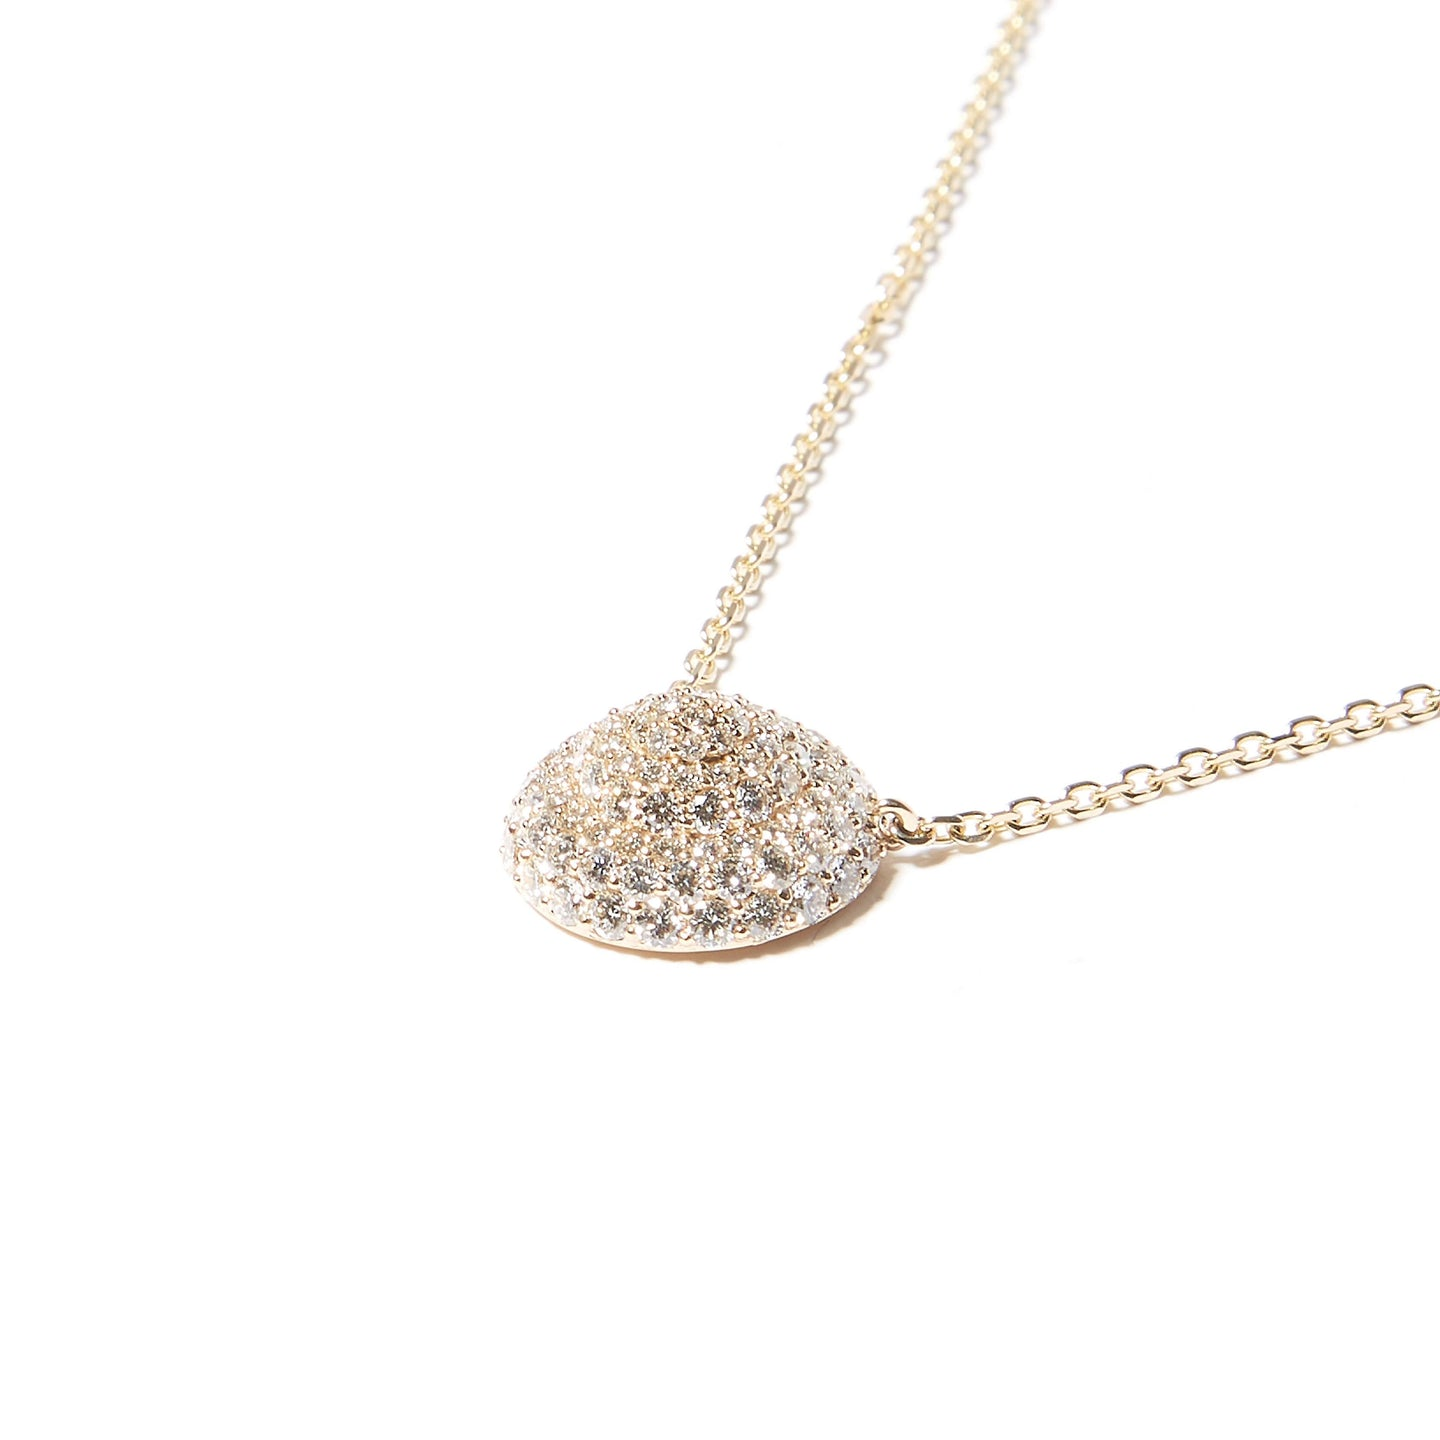 Evolve Large Pendant Necklace - Diamond